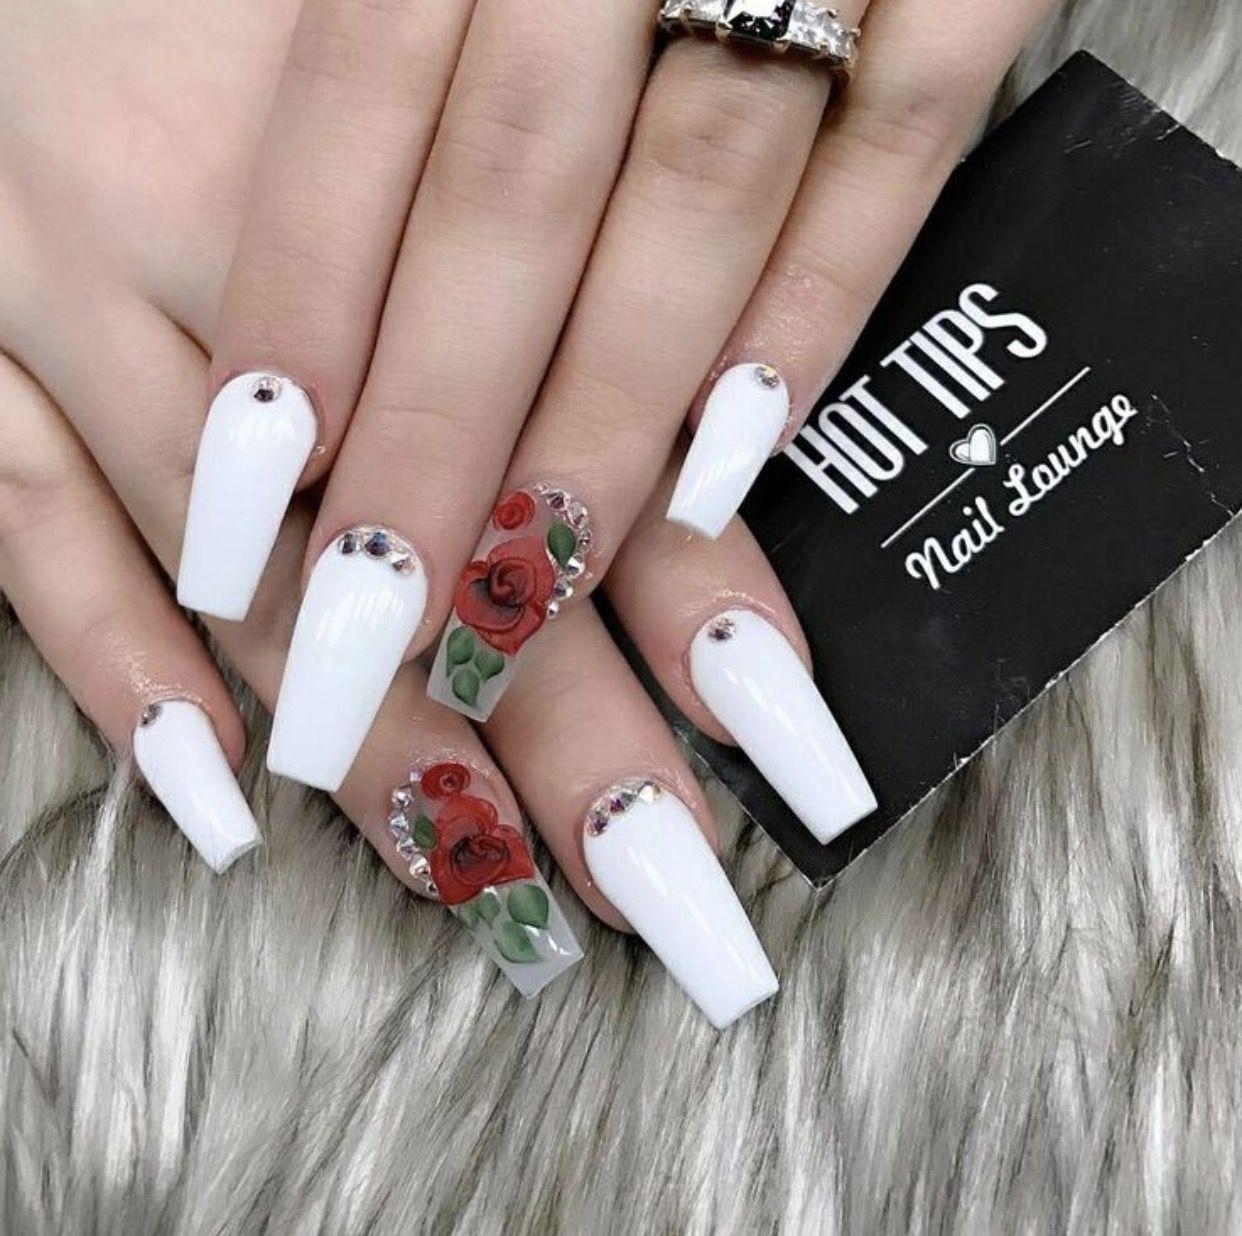 Pin by Sisi on Nails | Pinterest